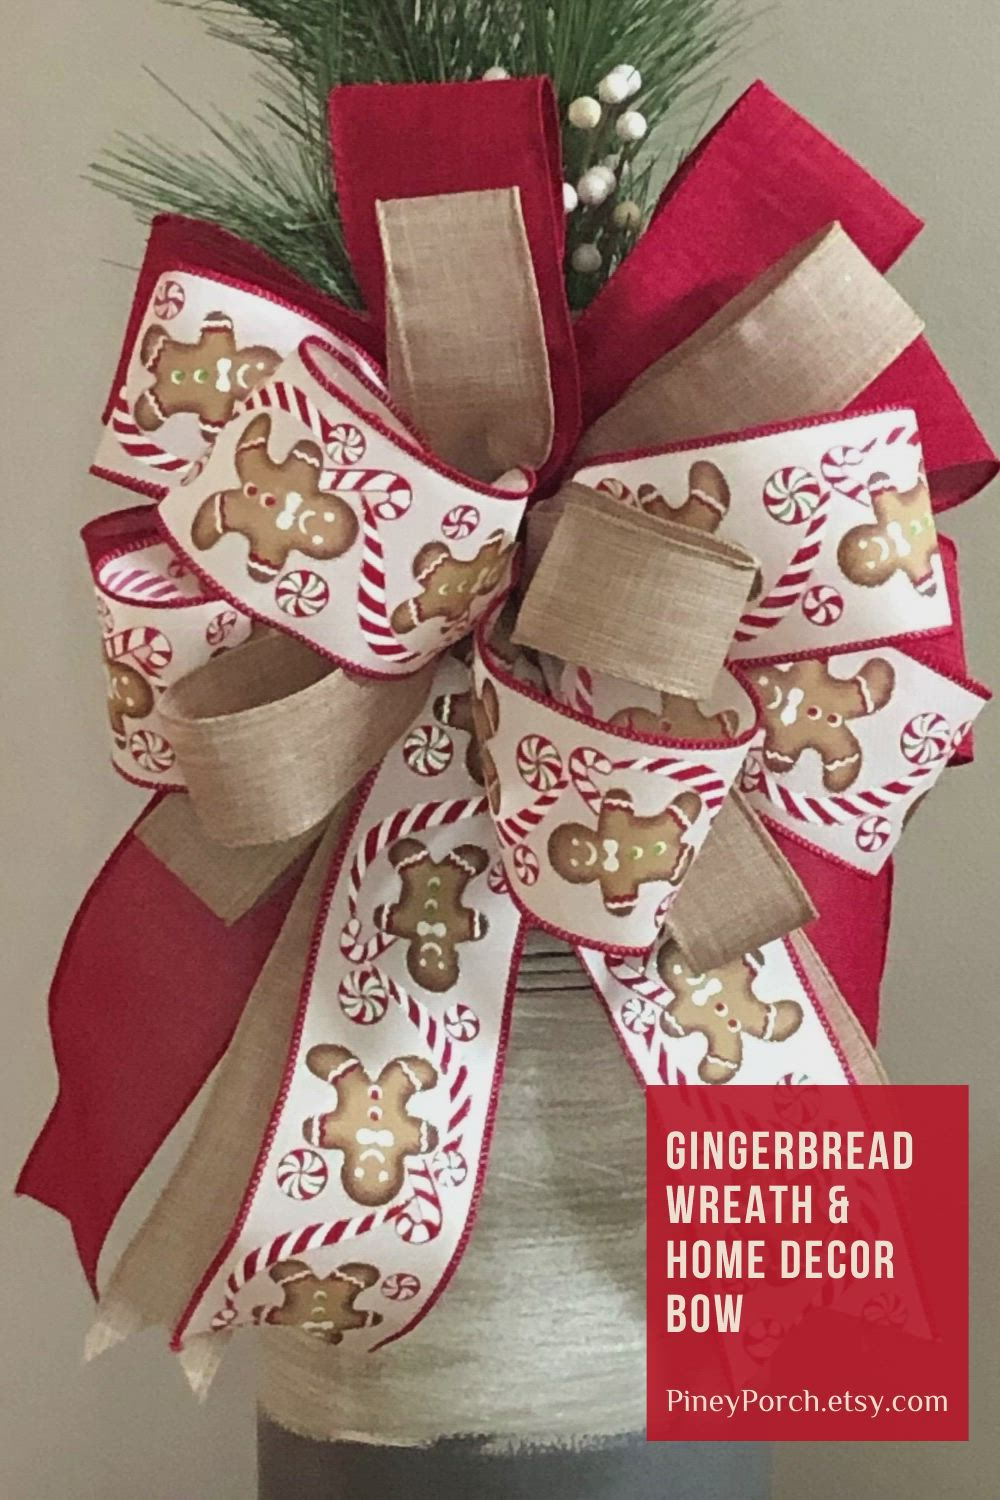 Gingerbread Tree Bow Red Gingerbread Christmas Bow Christmas Tree Bow Red XMAS Tree Bow Tree Topper Bow Gingerbread Wreath Bow